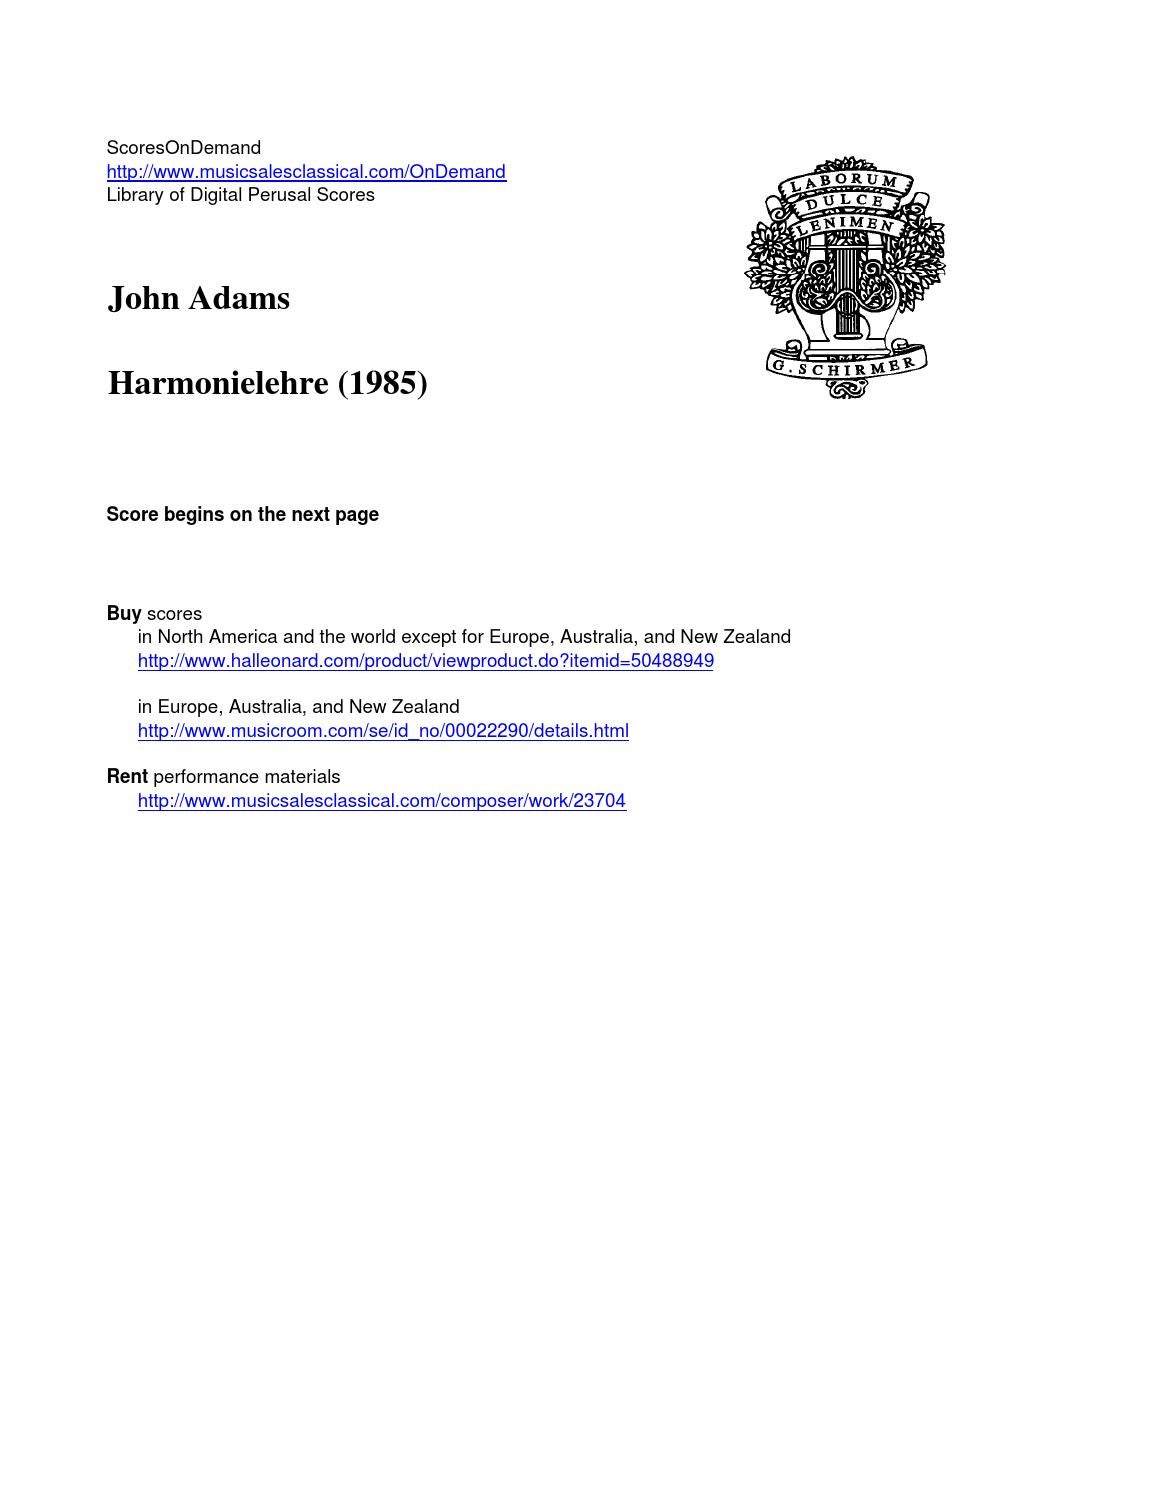 adams john by scoresondemand issuu adams harmonielehre